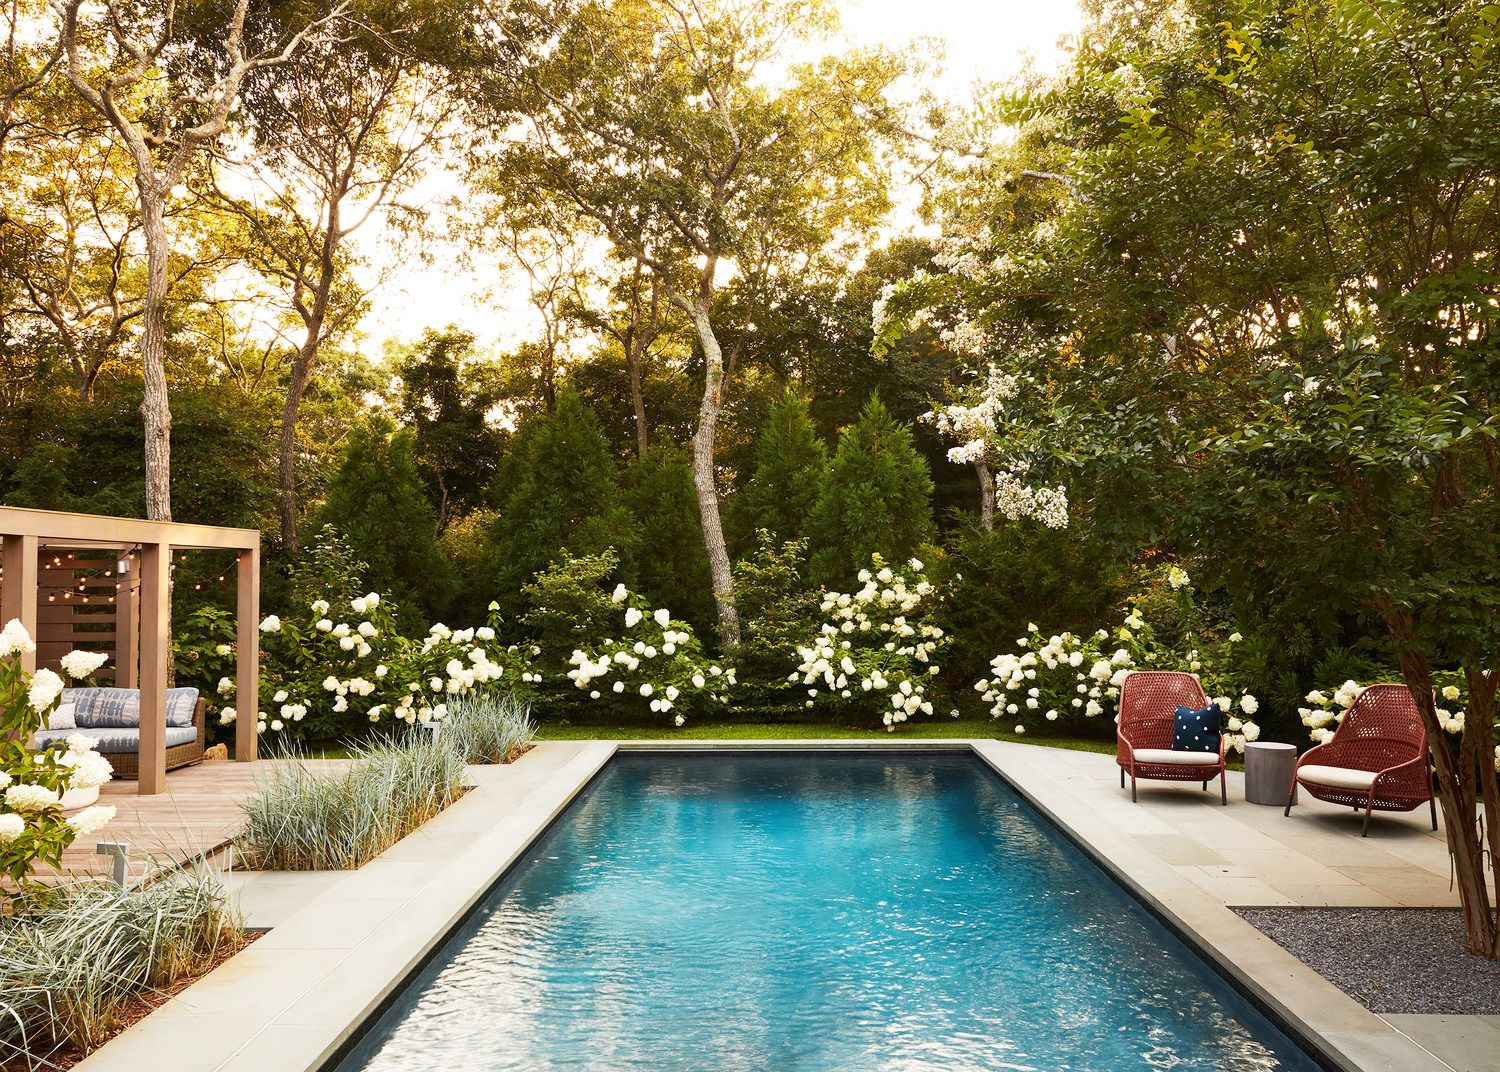 37 Breathtaking Backyard Ideas Outdoor Space Design Inspiration pertaining to 12 Smart Ways How to Build Backyard Pool Patio Ideas